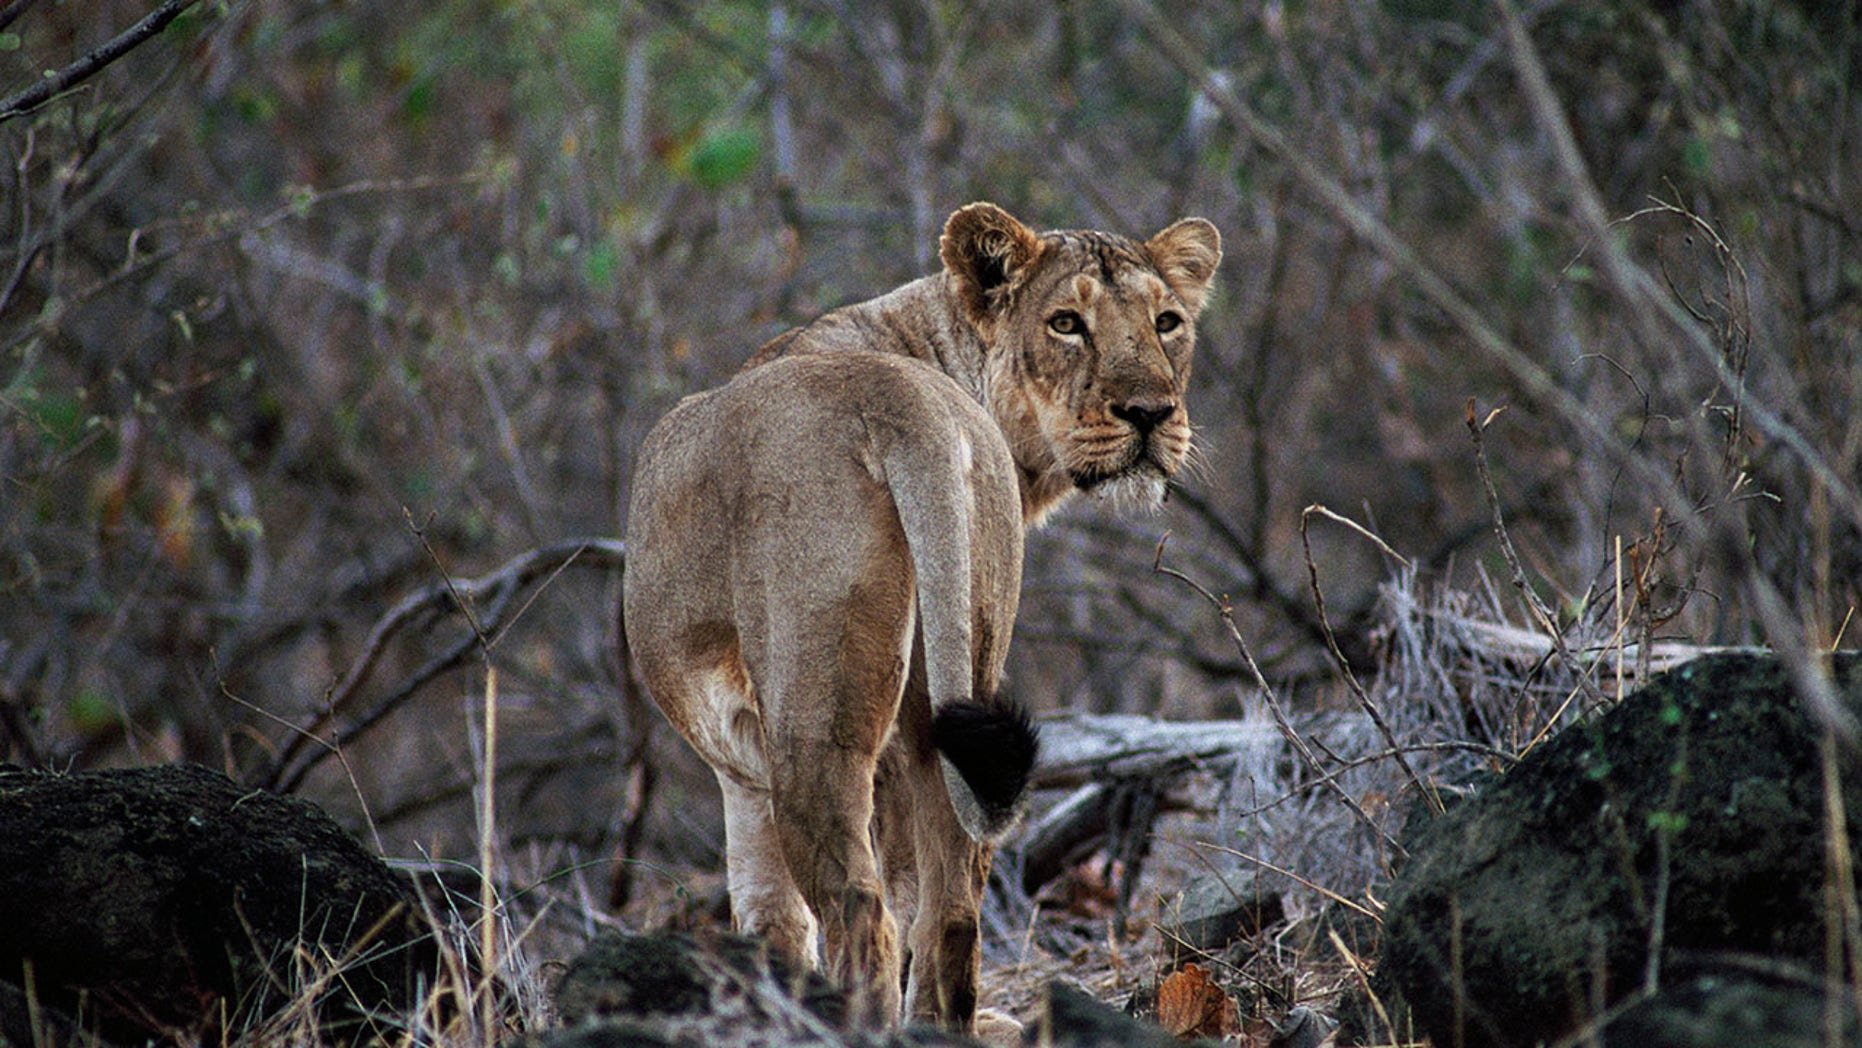 Asiatic lions that live in the sanctuary make the journey somewhat dangerous.